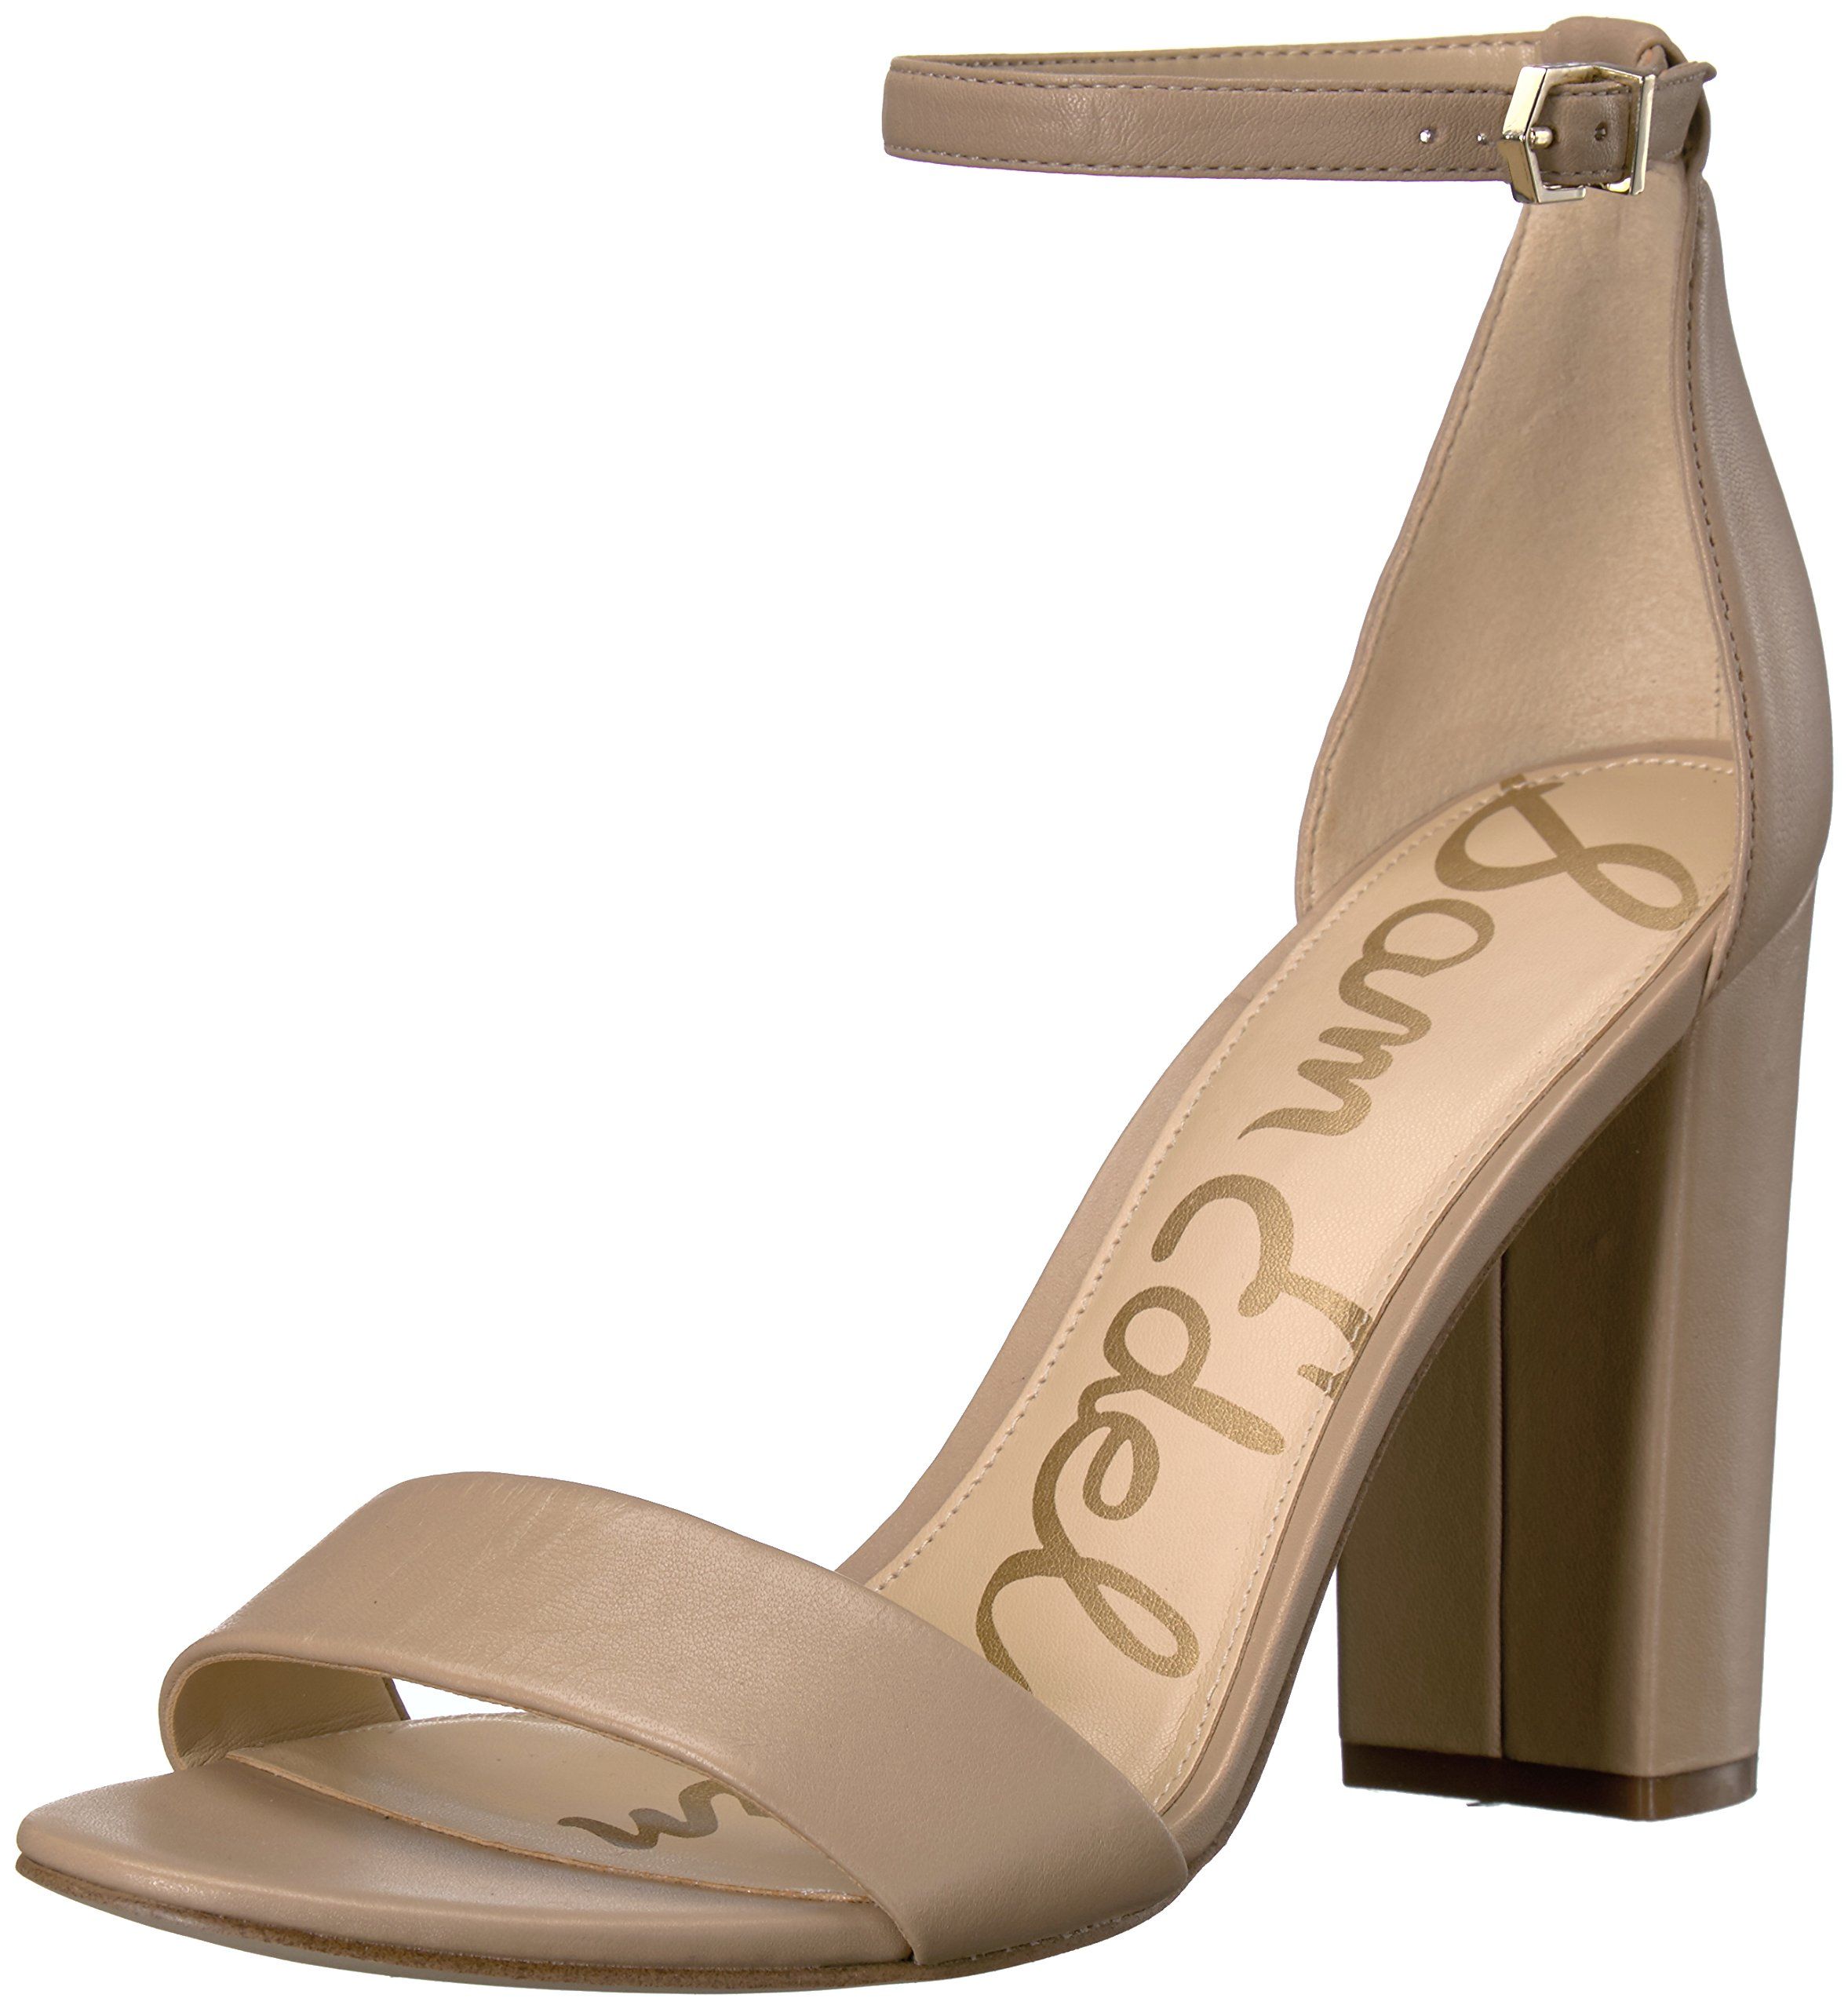 Sam Edelman Women's Yaro Dress Sandal, Classic Nude Leather, 7 M US